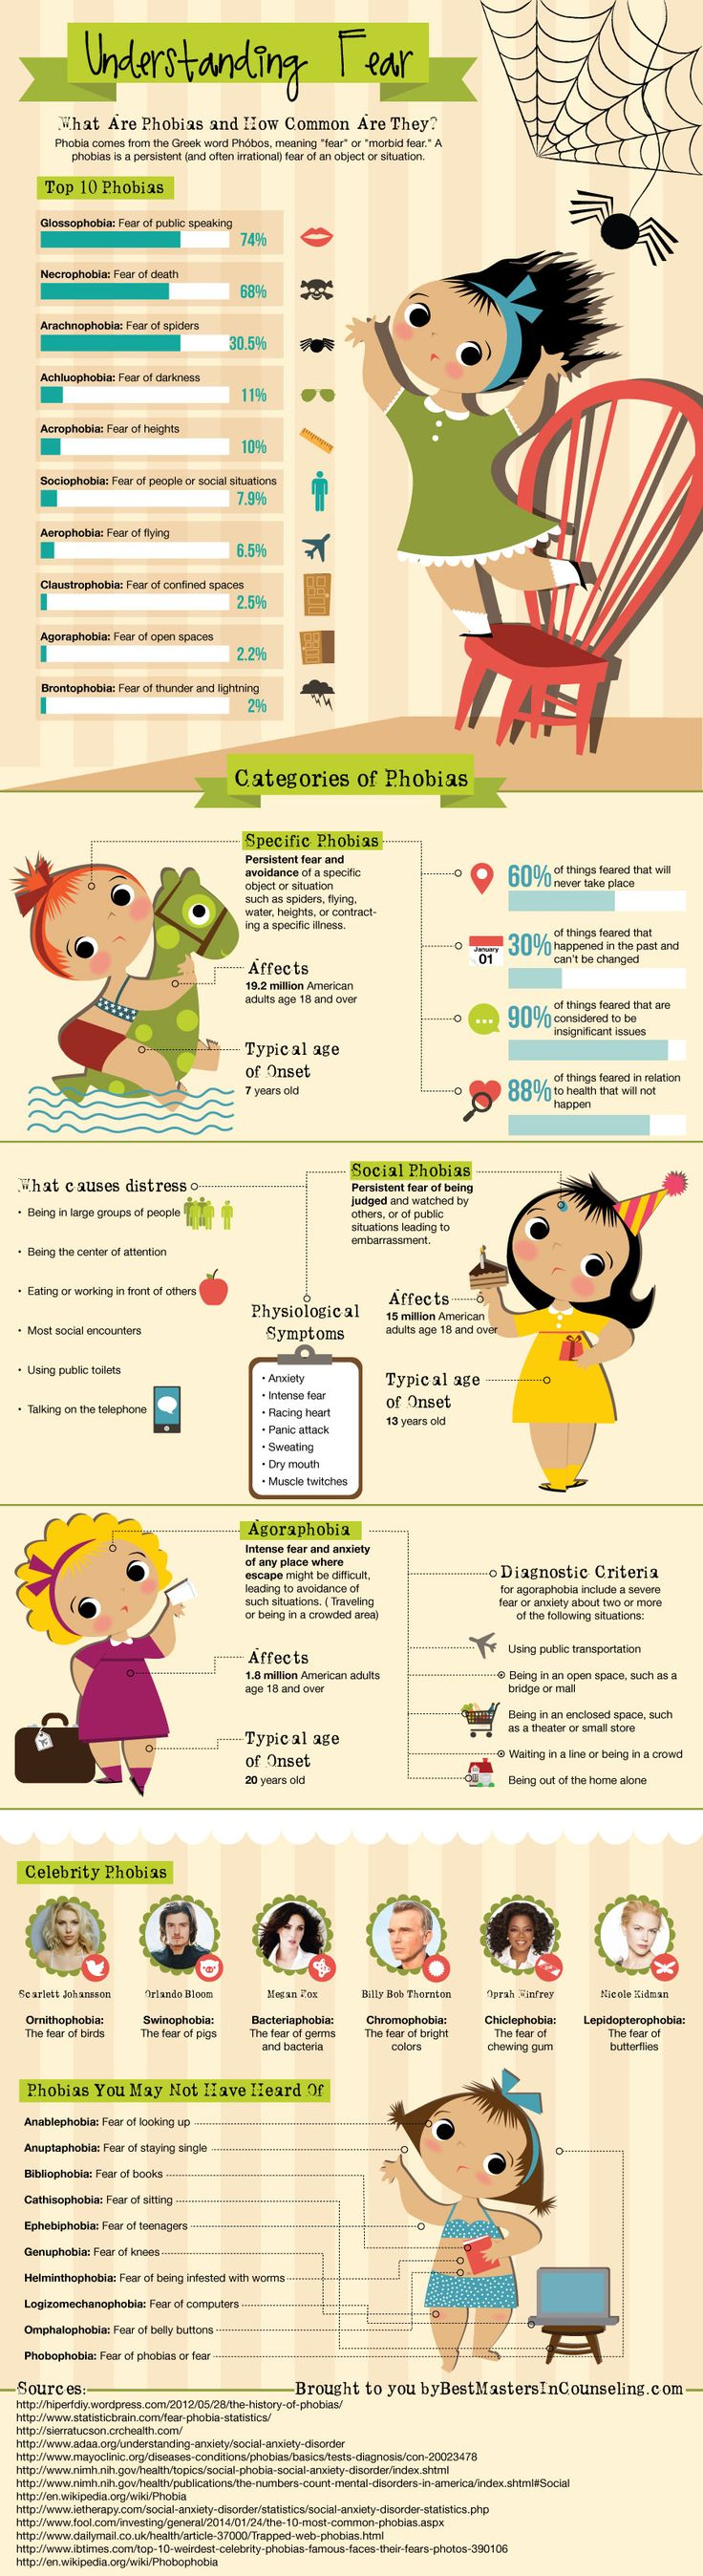 Psychology-Infographic-Infographic-Understanding-Fear Psychology Infographic : Infographic: Understanding Fear